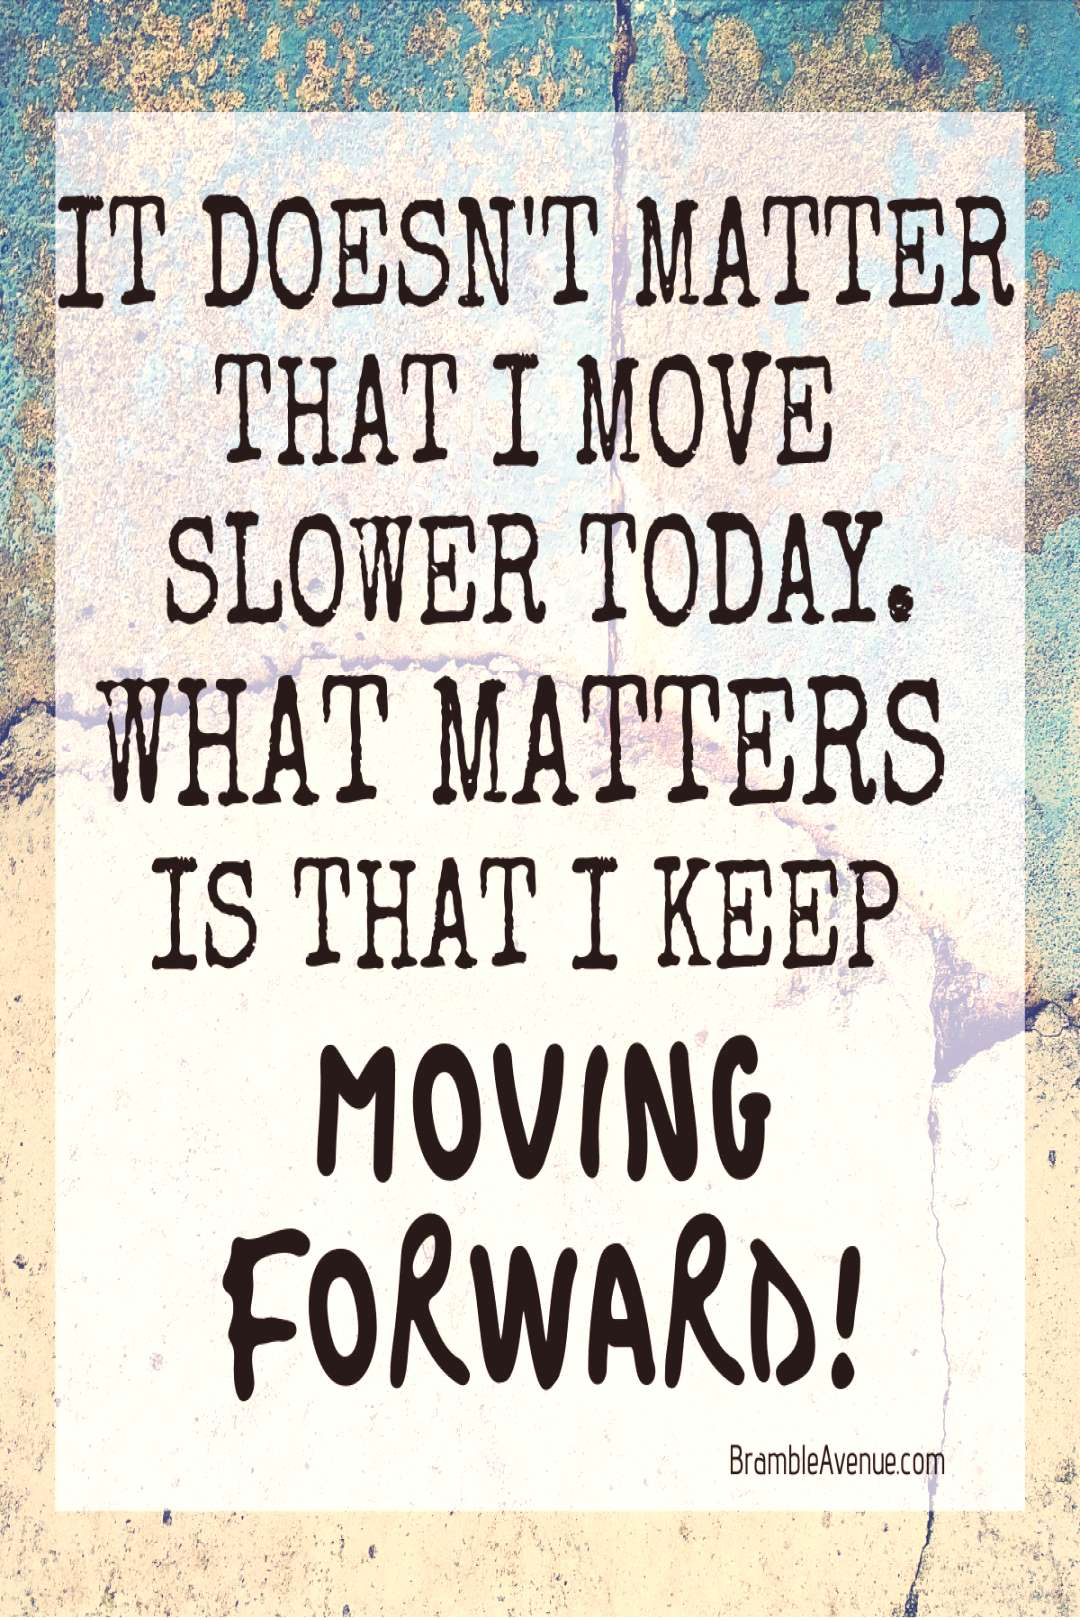 Keep moving forward quote - Bramble Avenue Forward is a Pace! It doesnt matter that I move slower